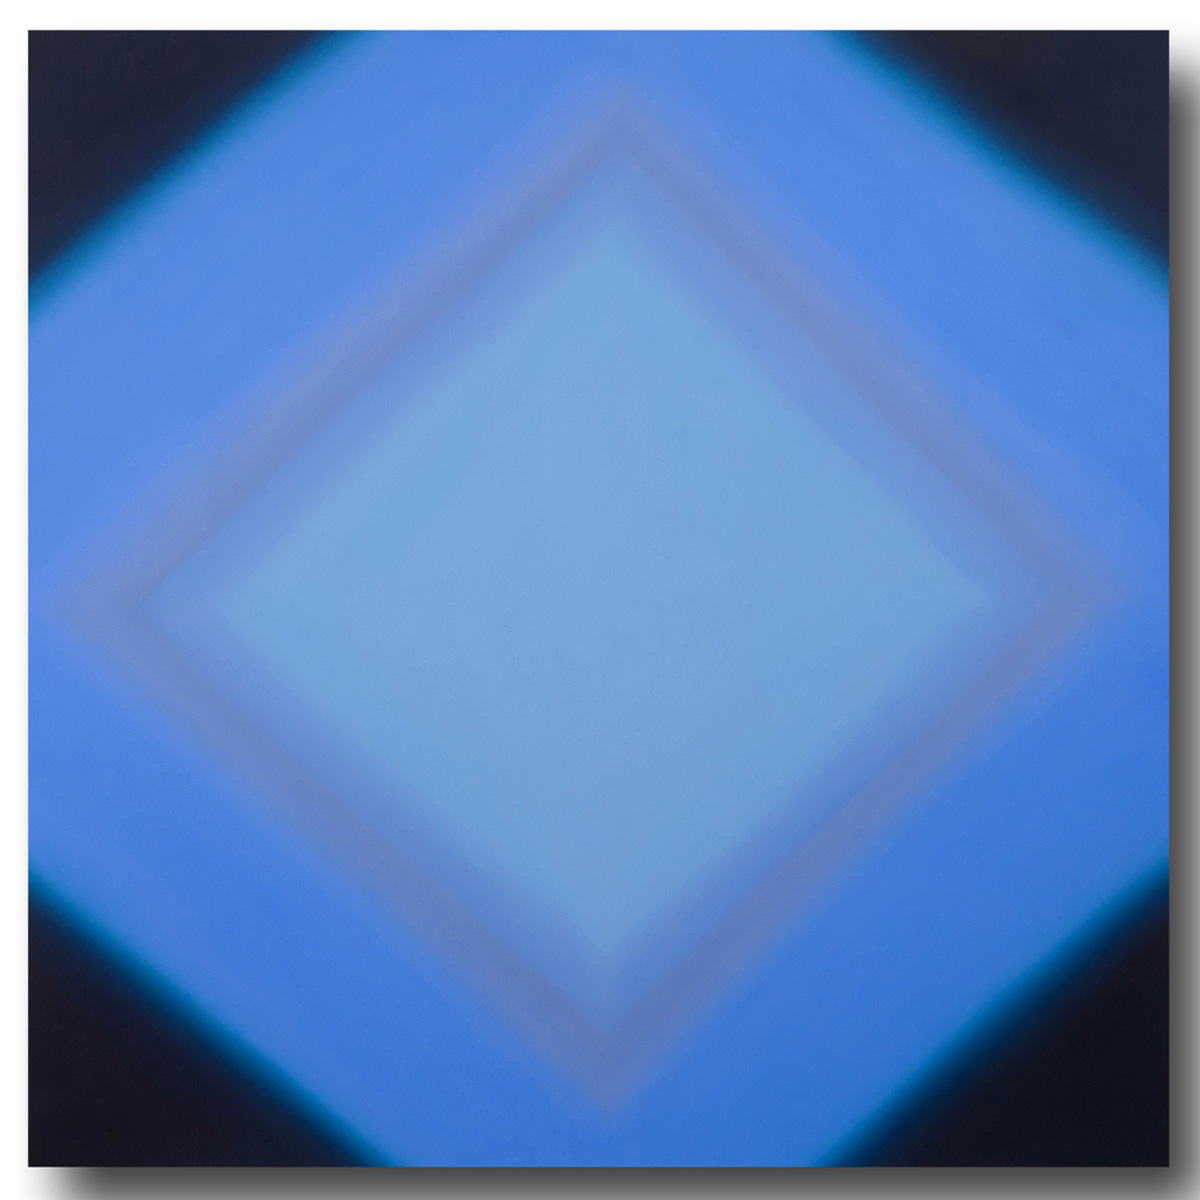 Inevitability of Truth 4-S7272 Square Diamond (Blue Orange/Blue Violet), 2015, oil on canvas on custom beveled stretcher, 72 x 72 in. (183 x 183 cm.)